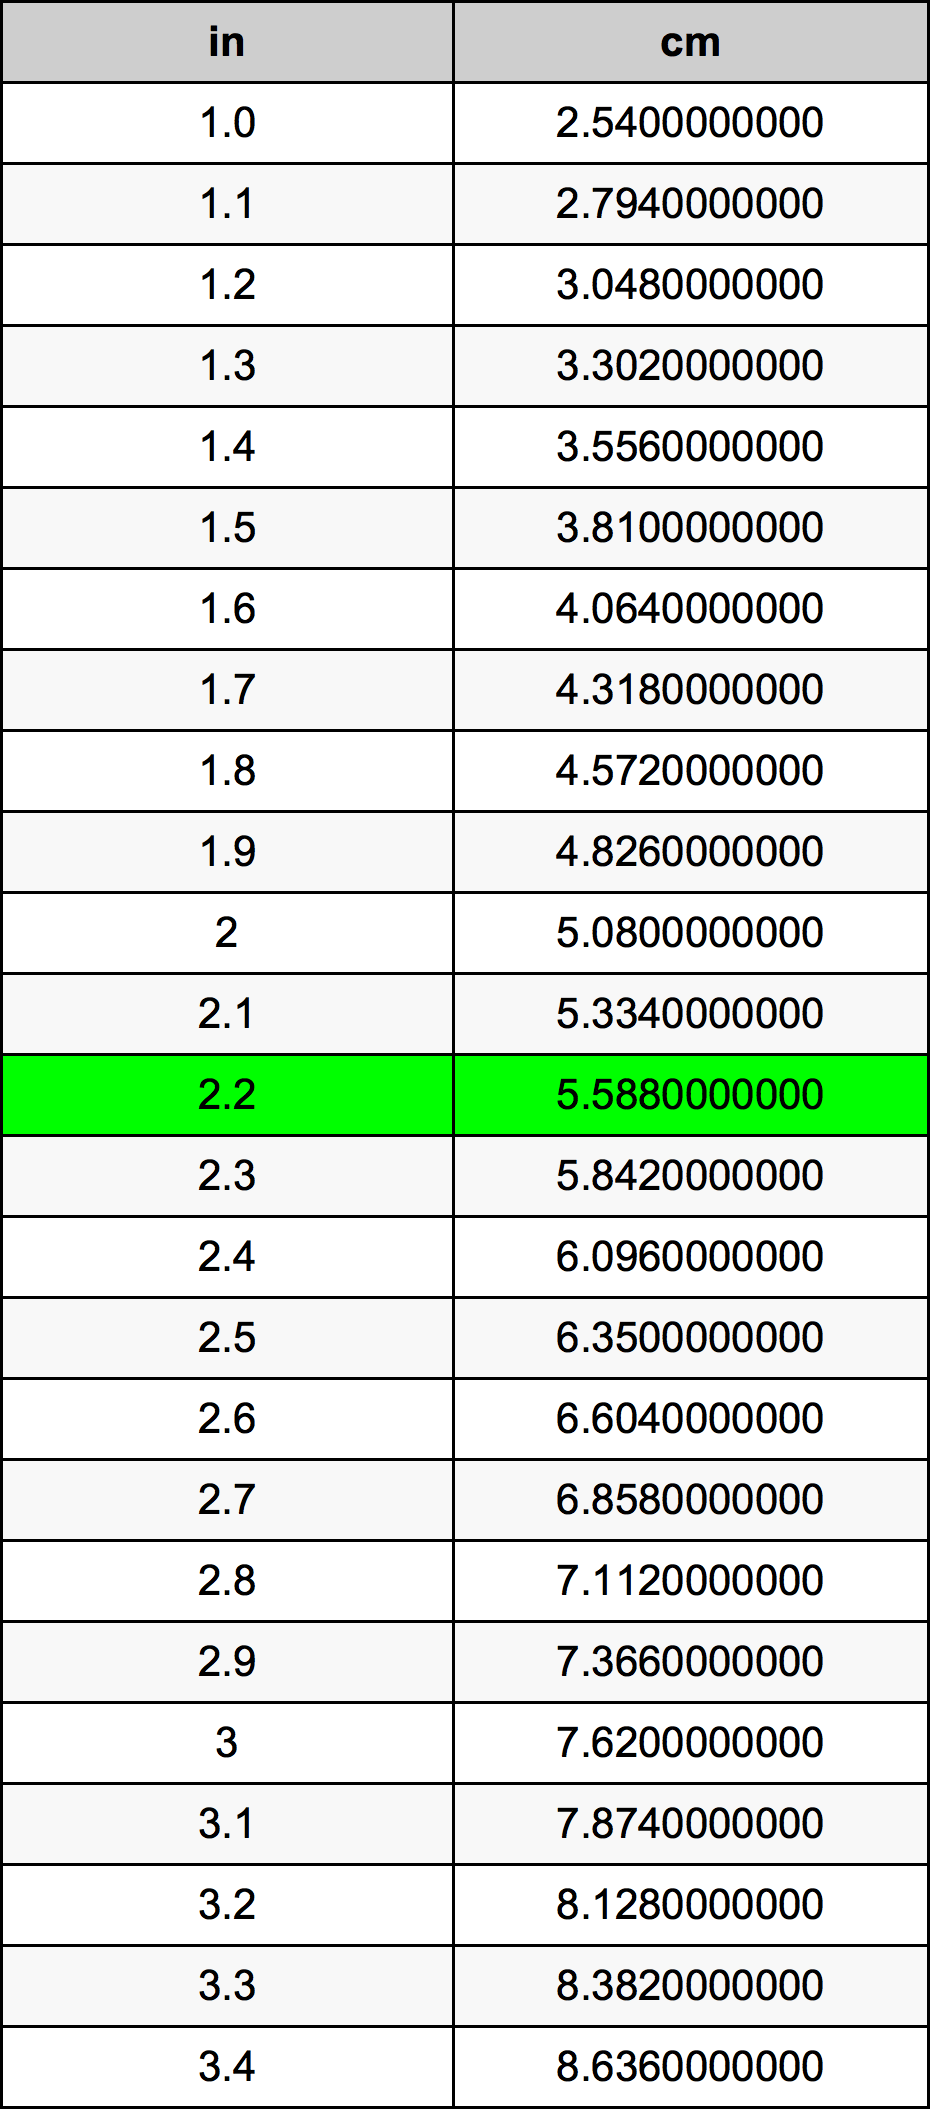 Further Inches To Centimeters Calculations